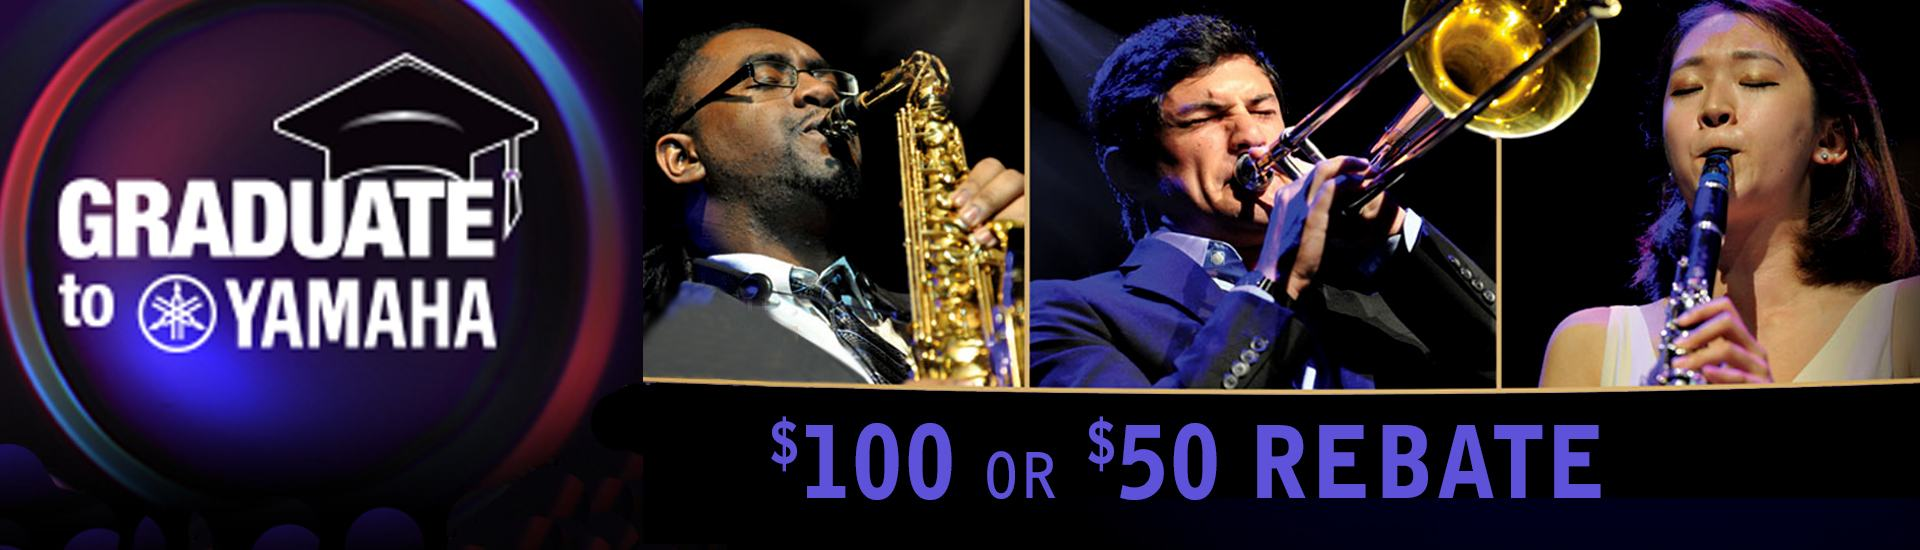 Special rebates on band instruments